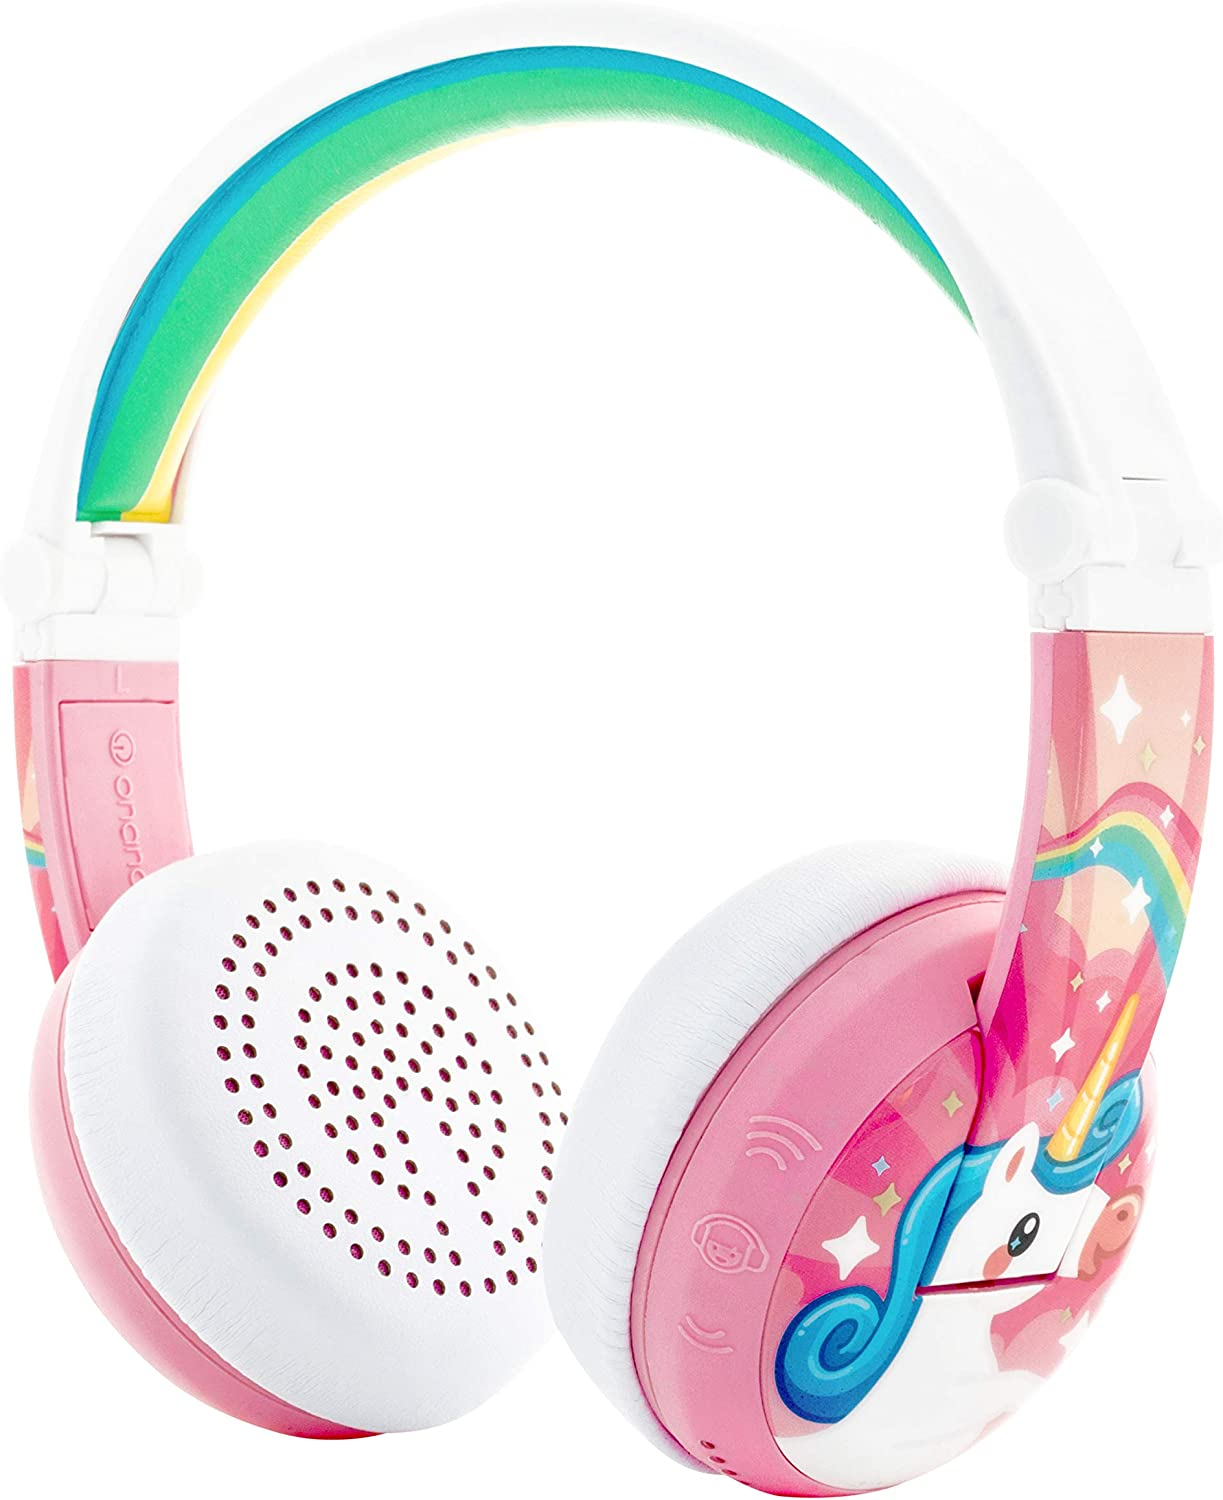 ONANOFF BuddyPhones Wave, Waterproof Wireless Bluetooth Volume-Limiting Kids Headphones, 20-Hour Battery Life, 4 Volume Settings of 75, 85, 94db and StudyMode, Includes Backup Cable for Sharing, Pink